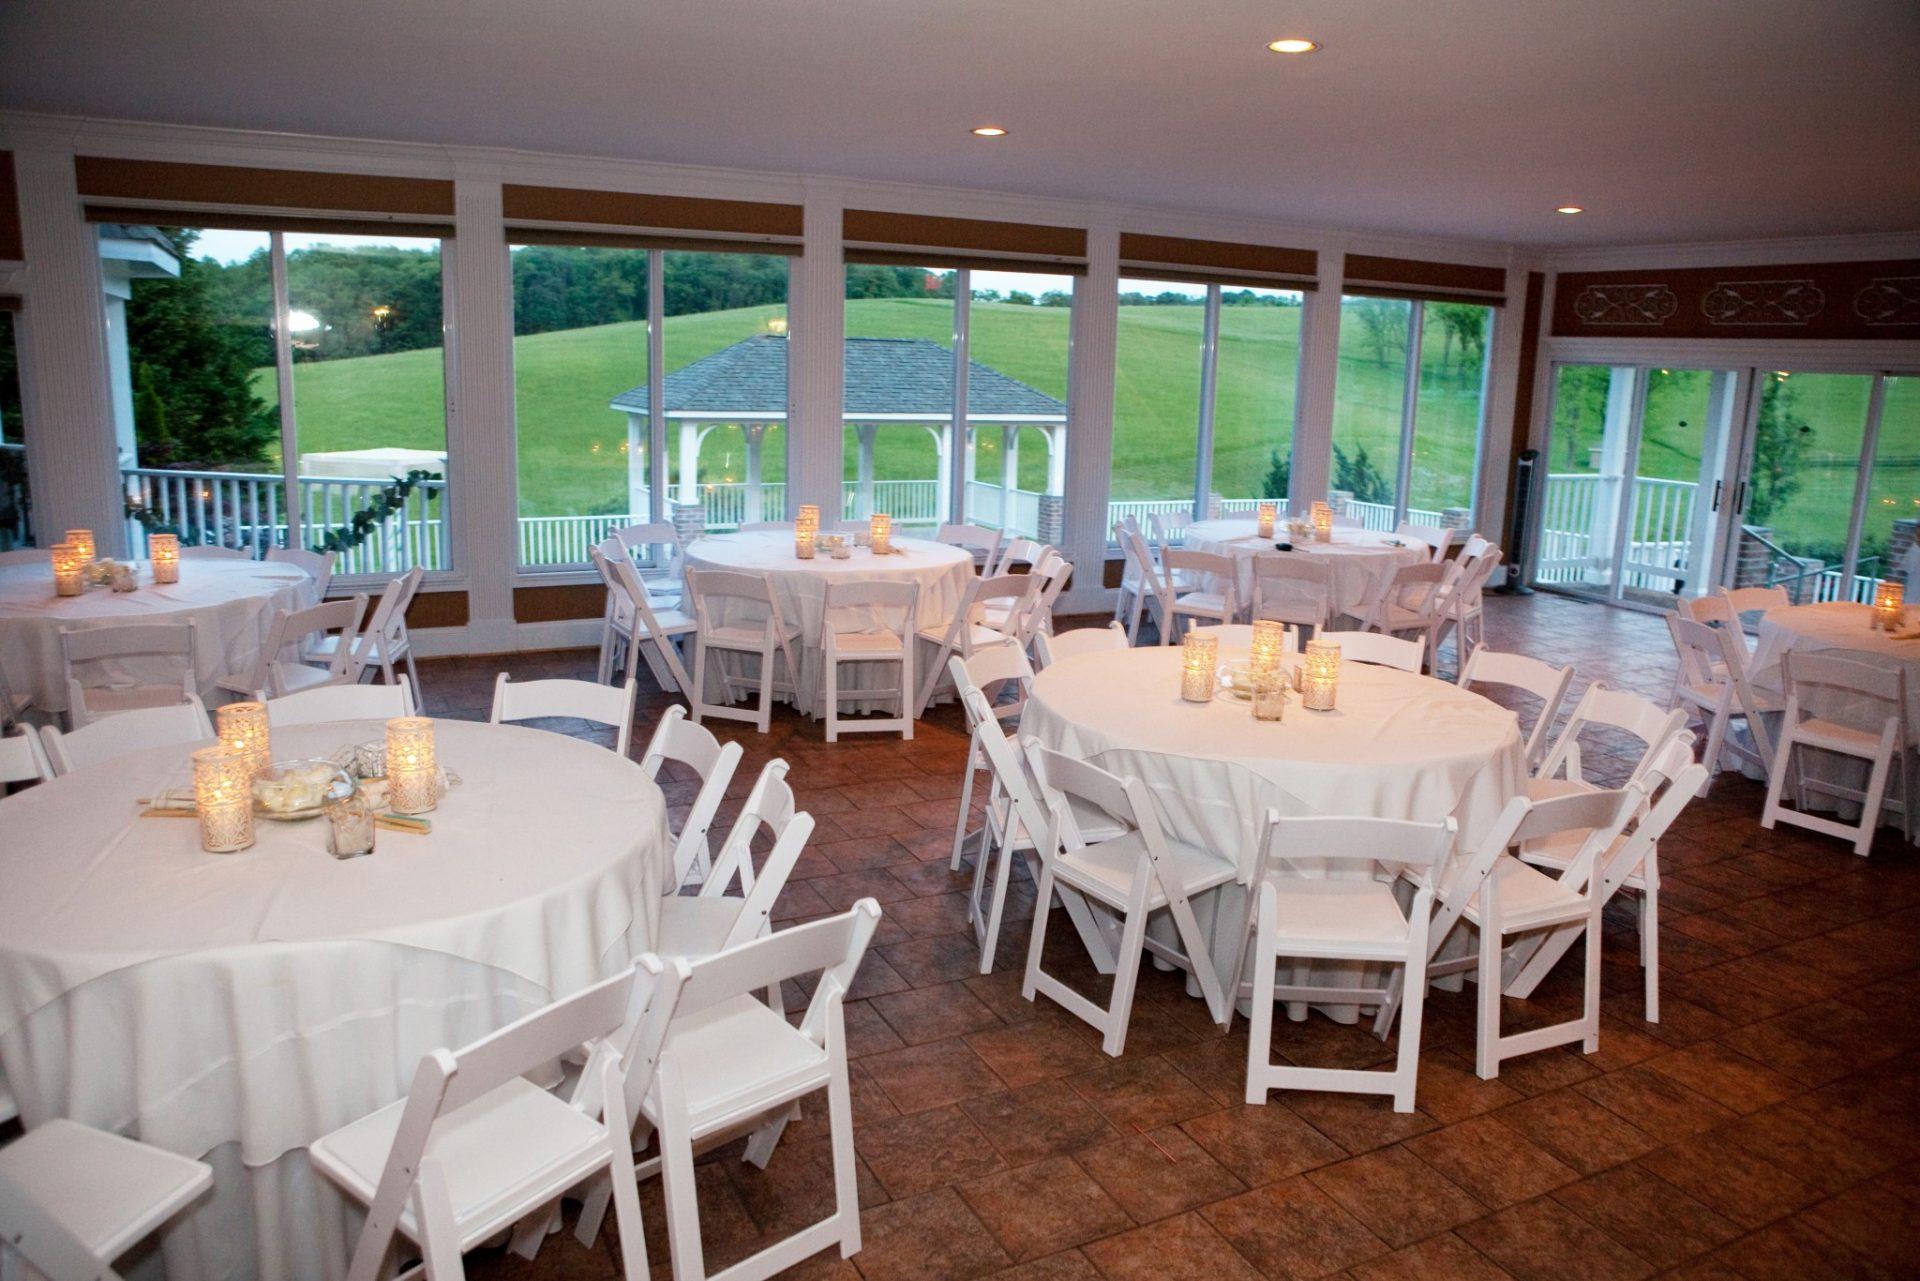 Wedding And Reception Venues In Maryland : Wedding venue in frederick md top maryland